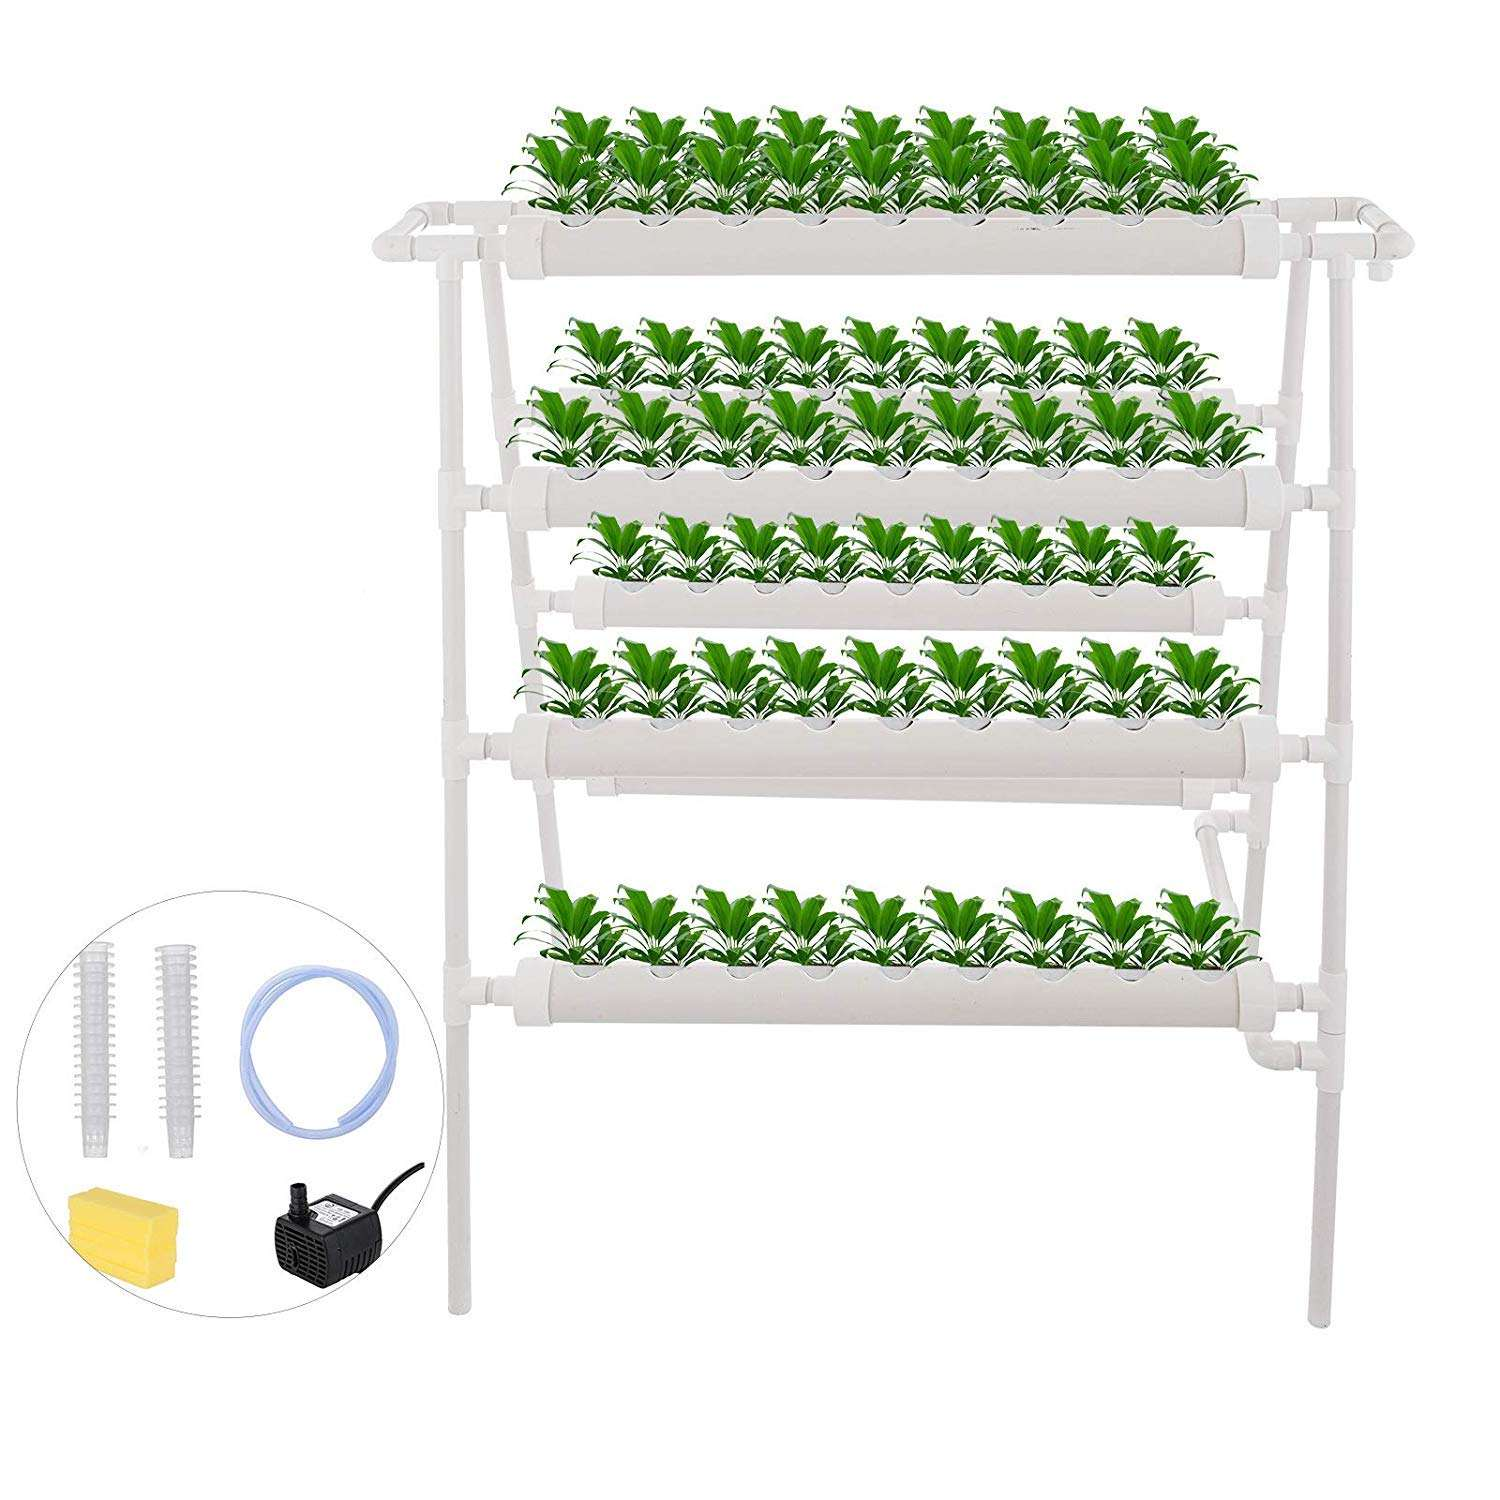 Hydroponics Nft System with 72 Holes Kits,Vertical Hydroponics PVC Pipe Plant Vegetable